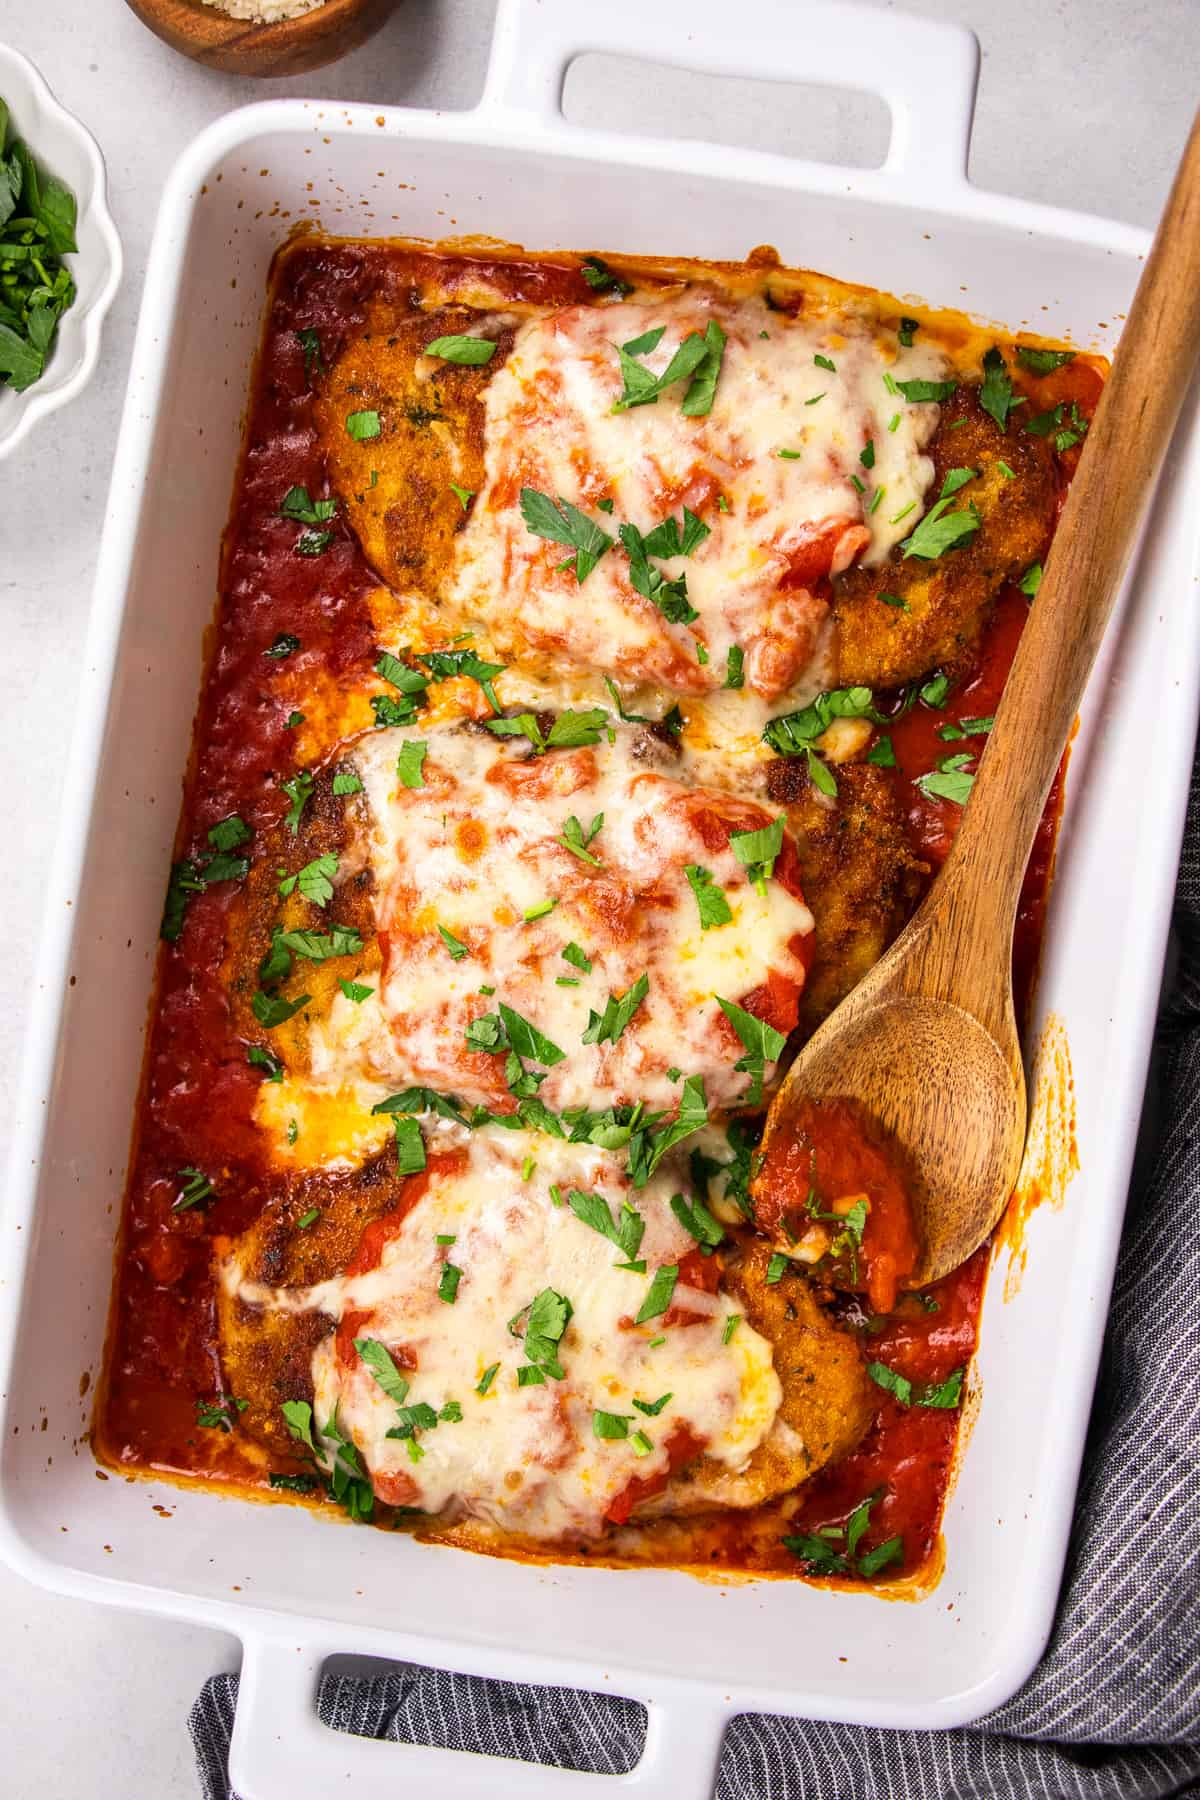 Chicken Parmesan with marinara sauce in a white baking pan.